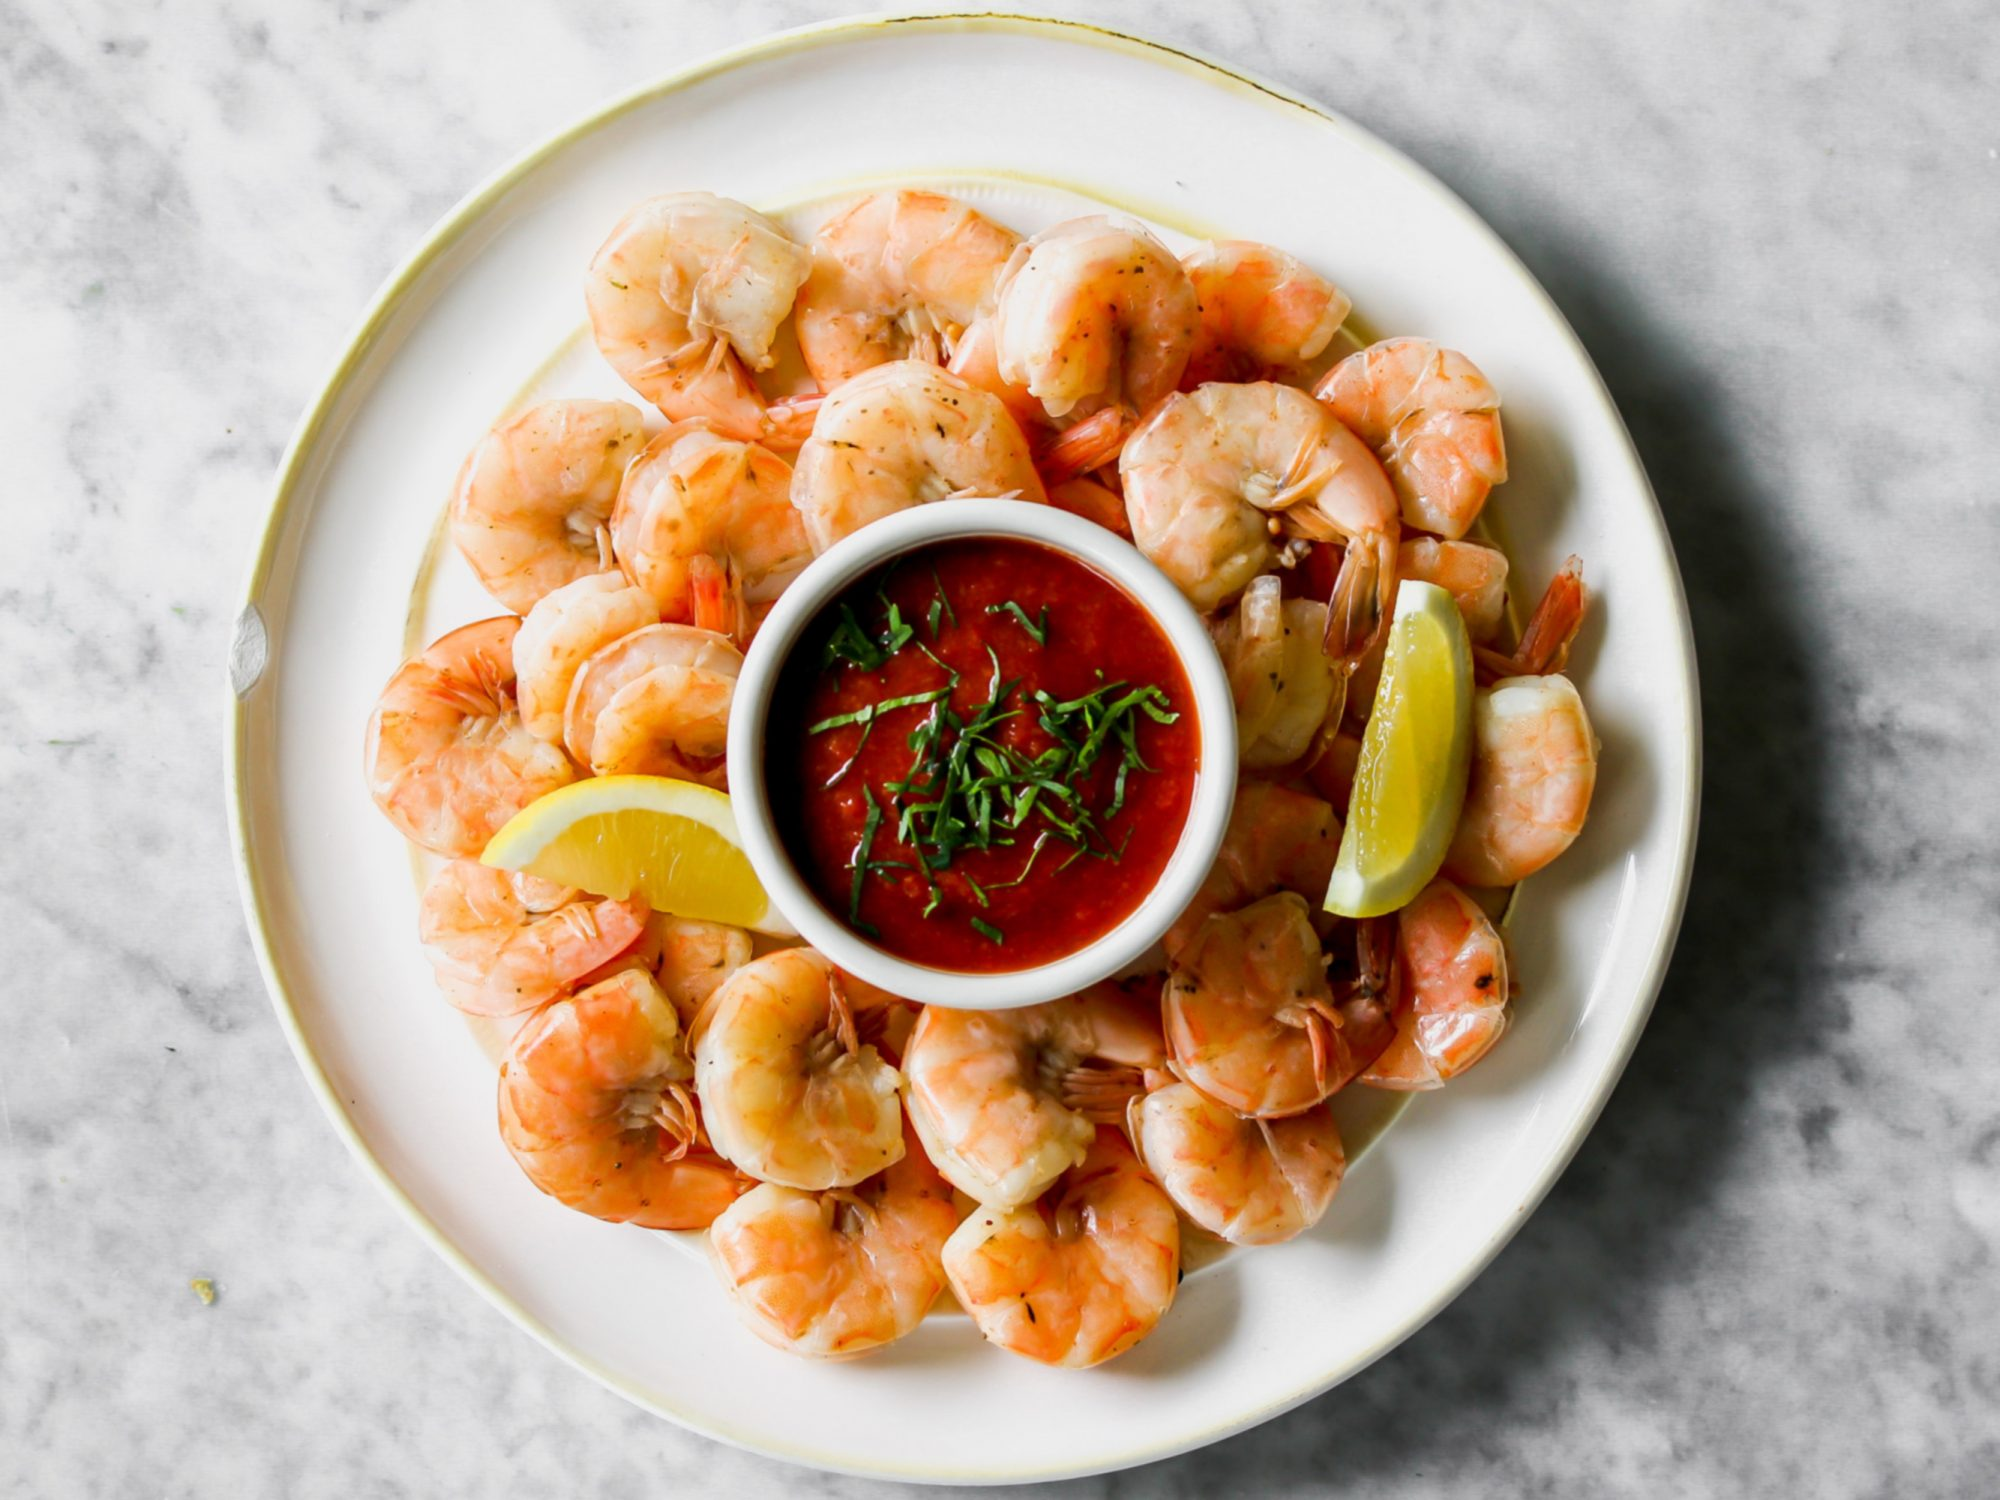 Boiled Shrimp with Cocktail Sauce